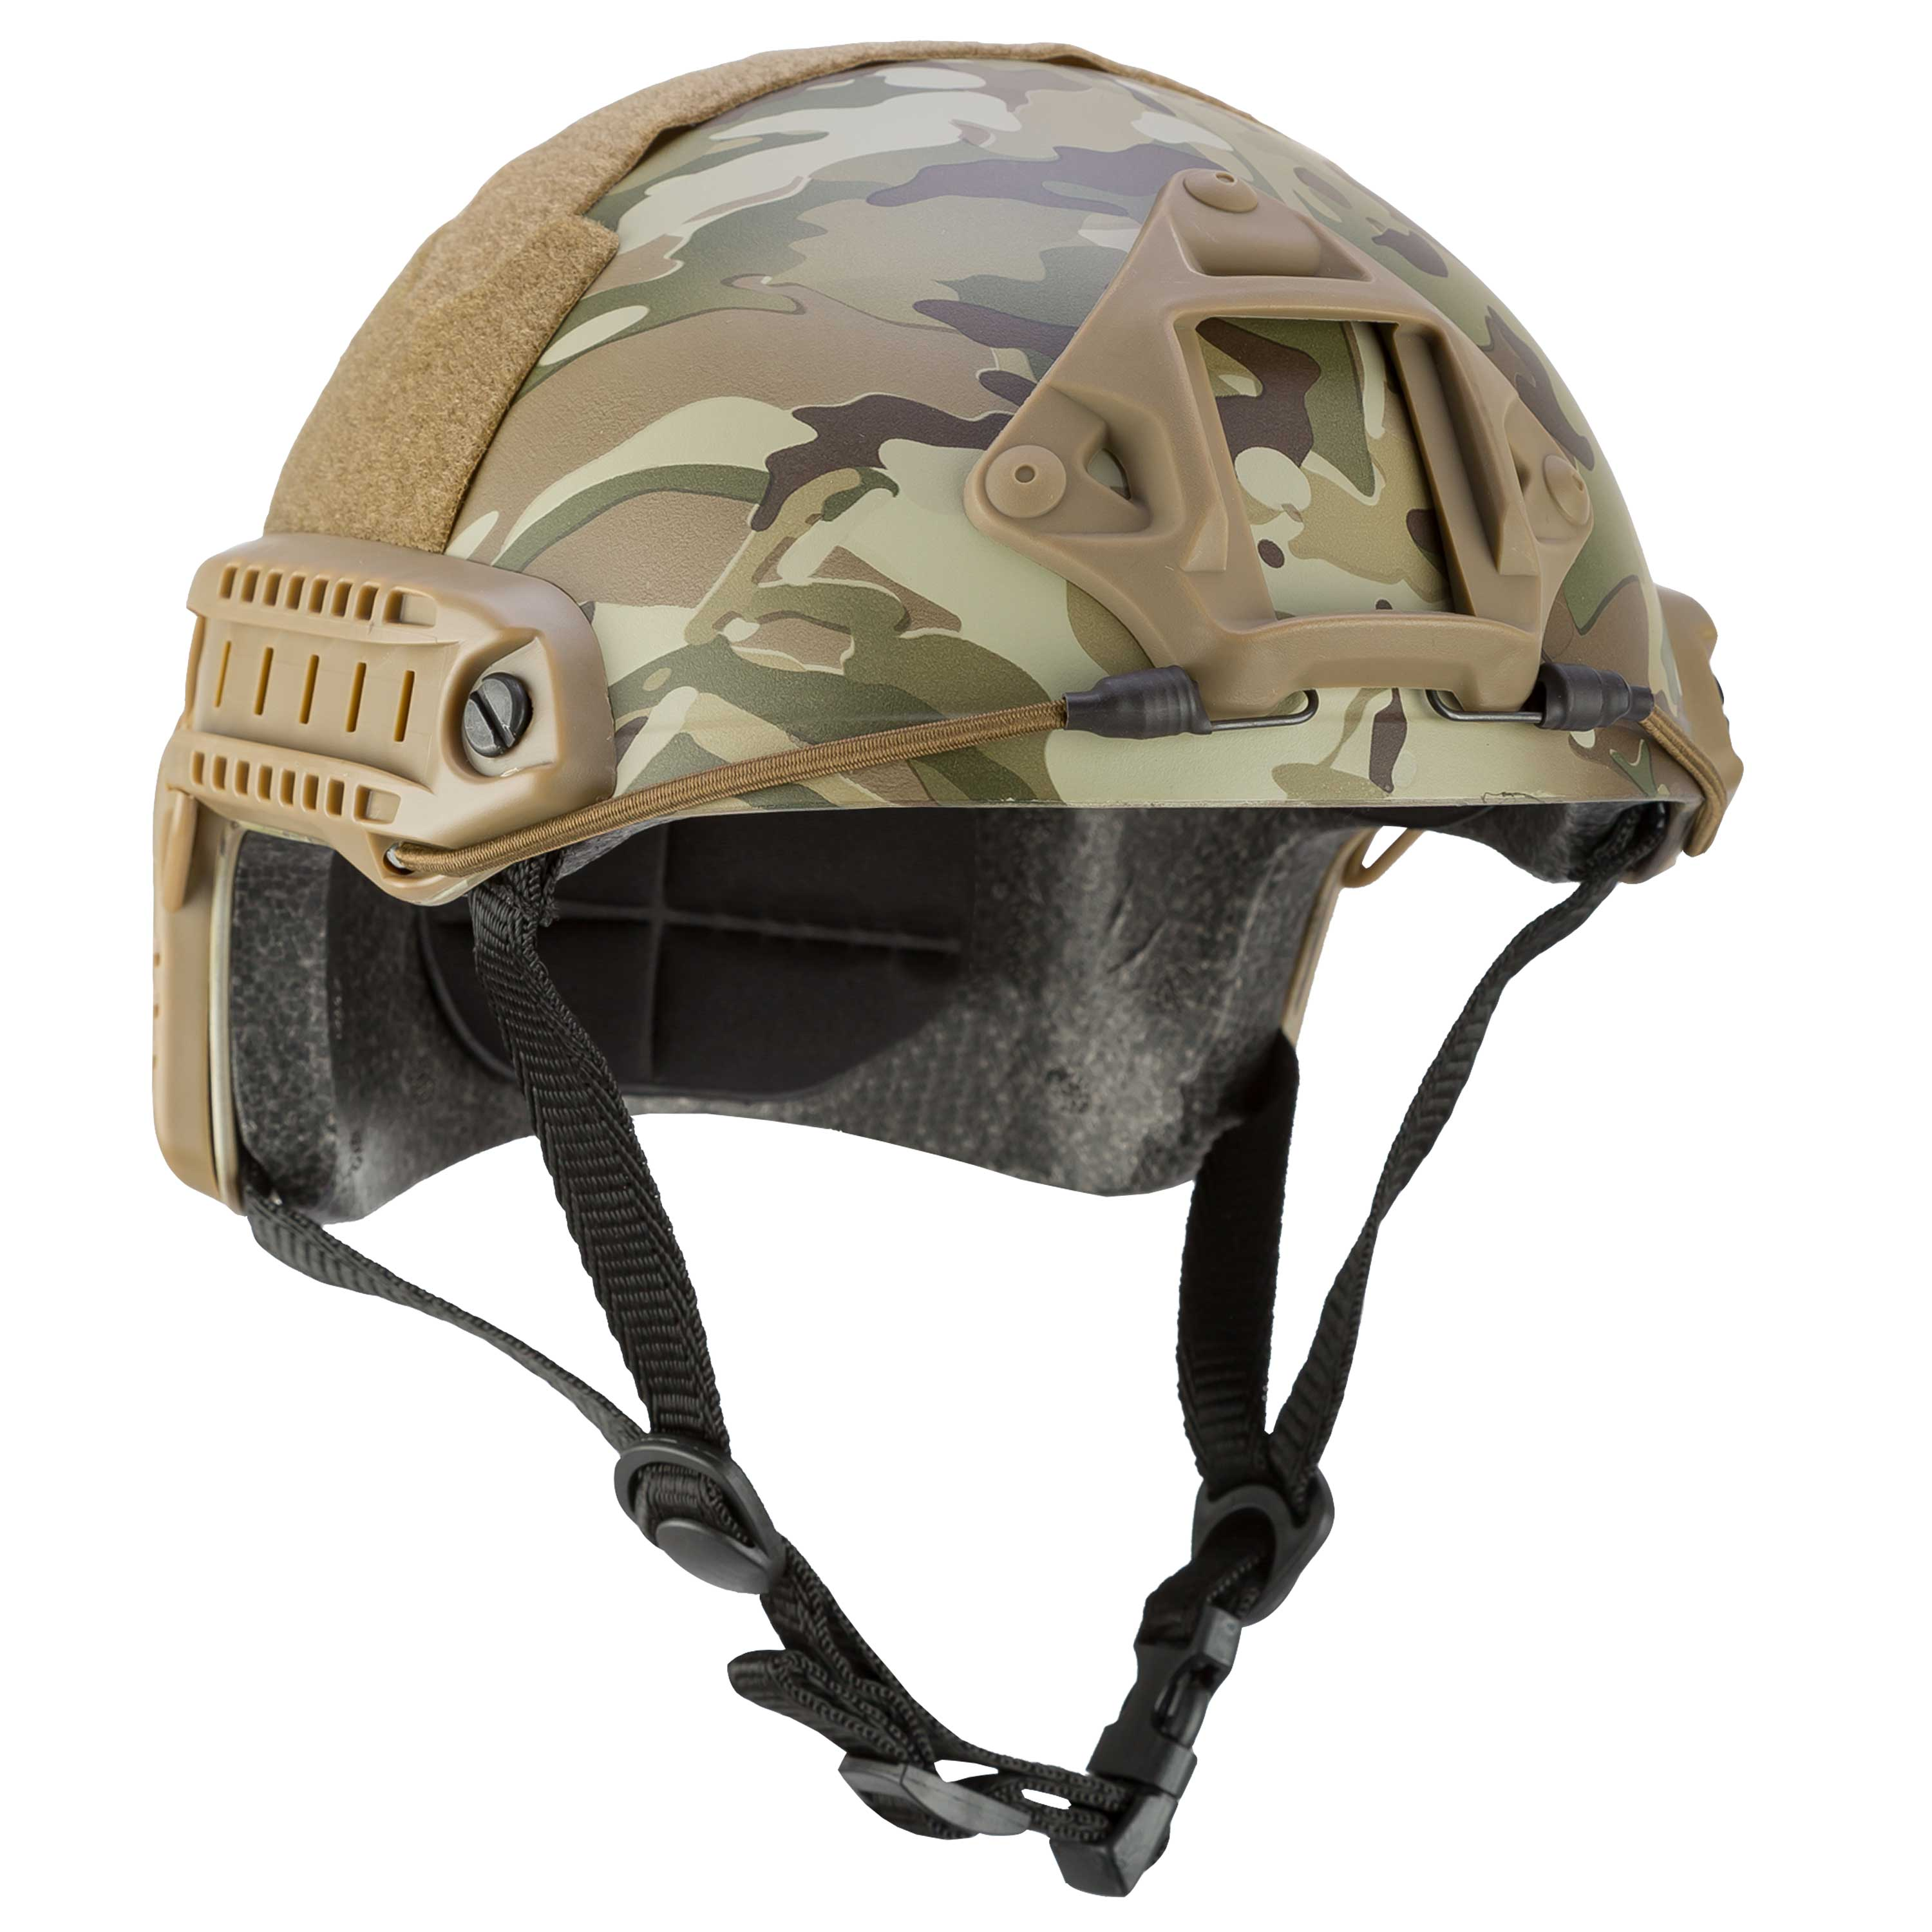 Emerson Helm Fast Helmet MH Eco Version atp